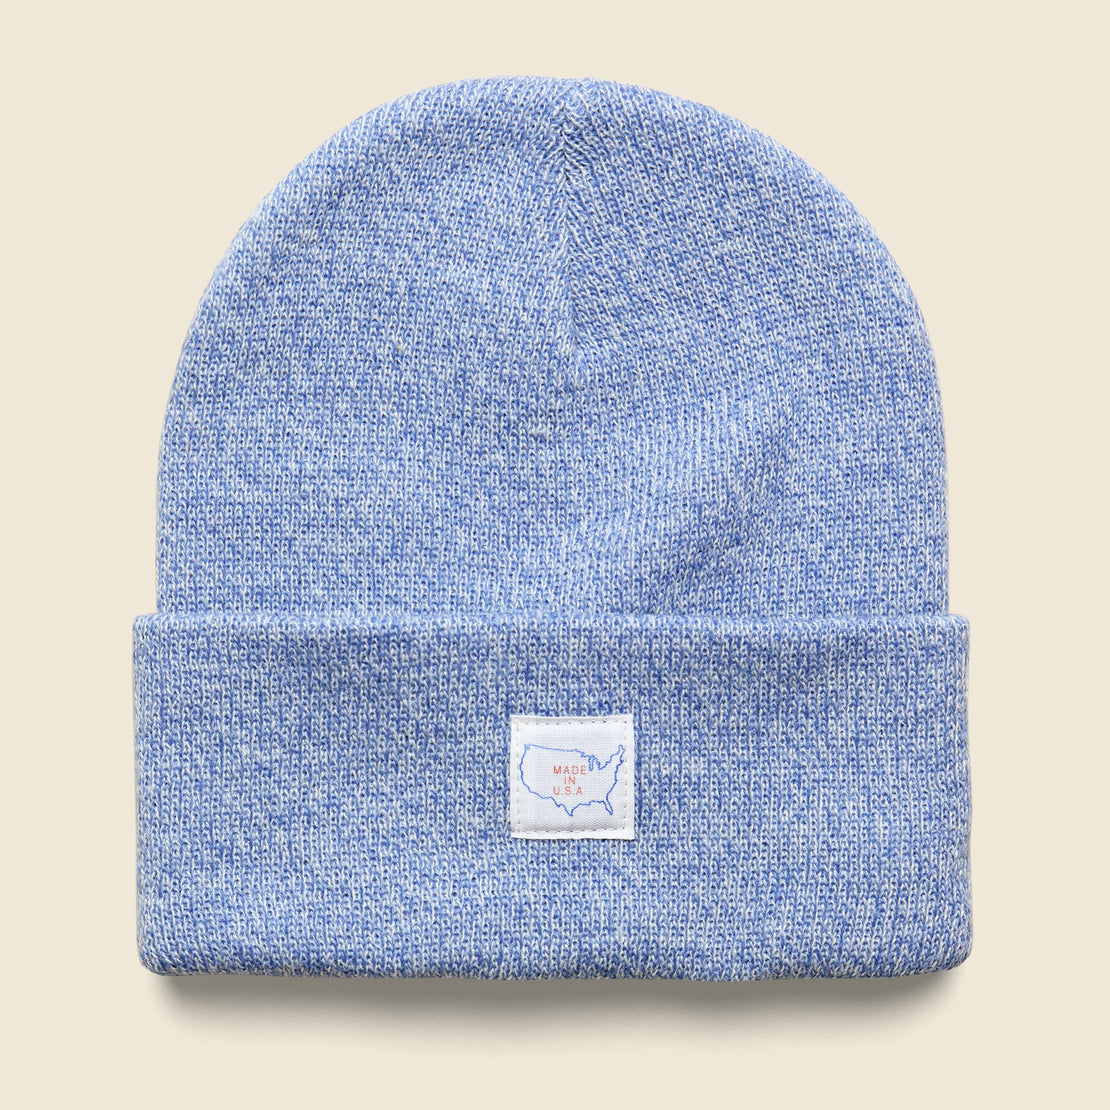 Save Khaki Marled Map Label Cap - Light Blue